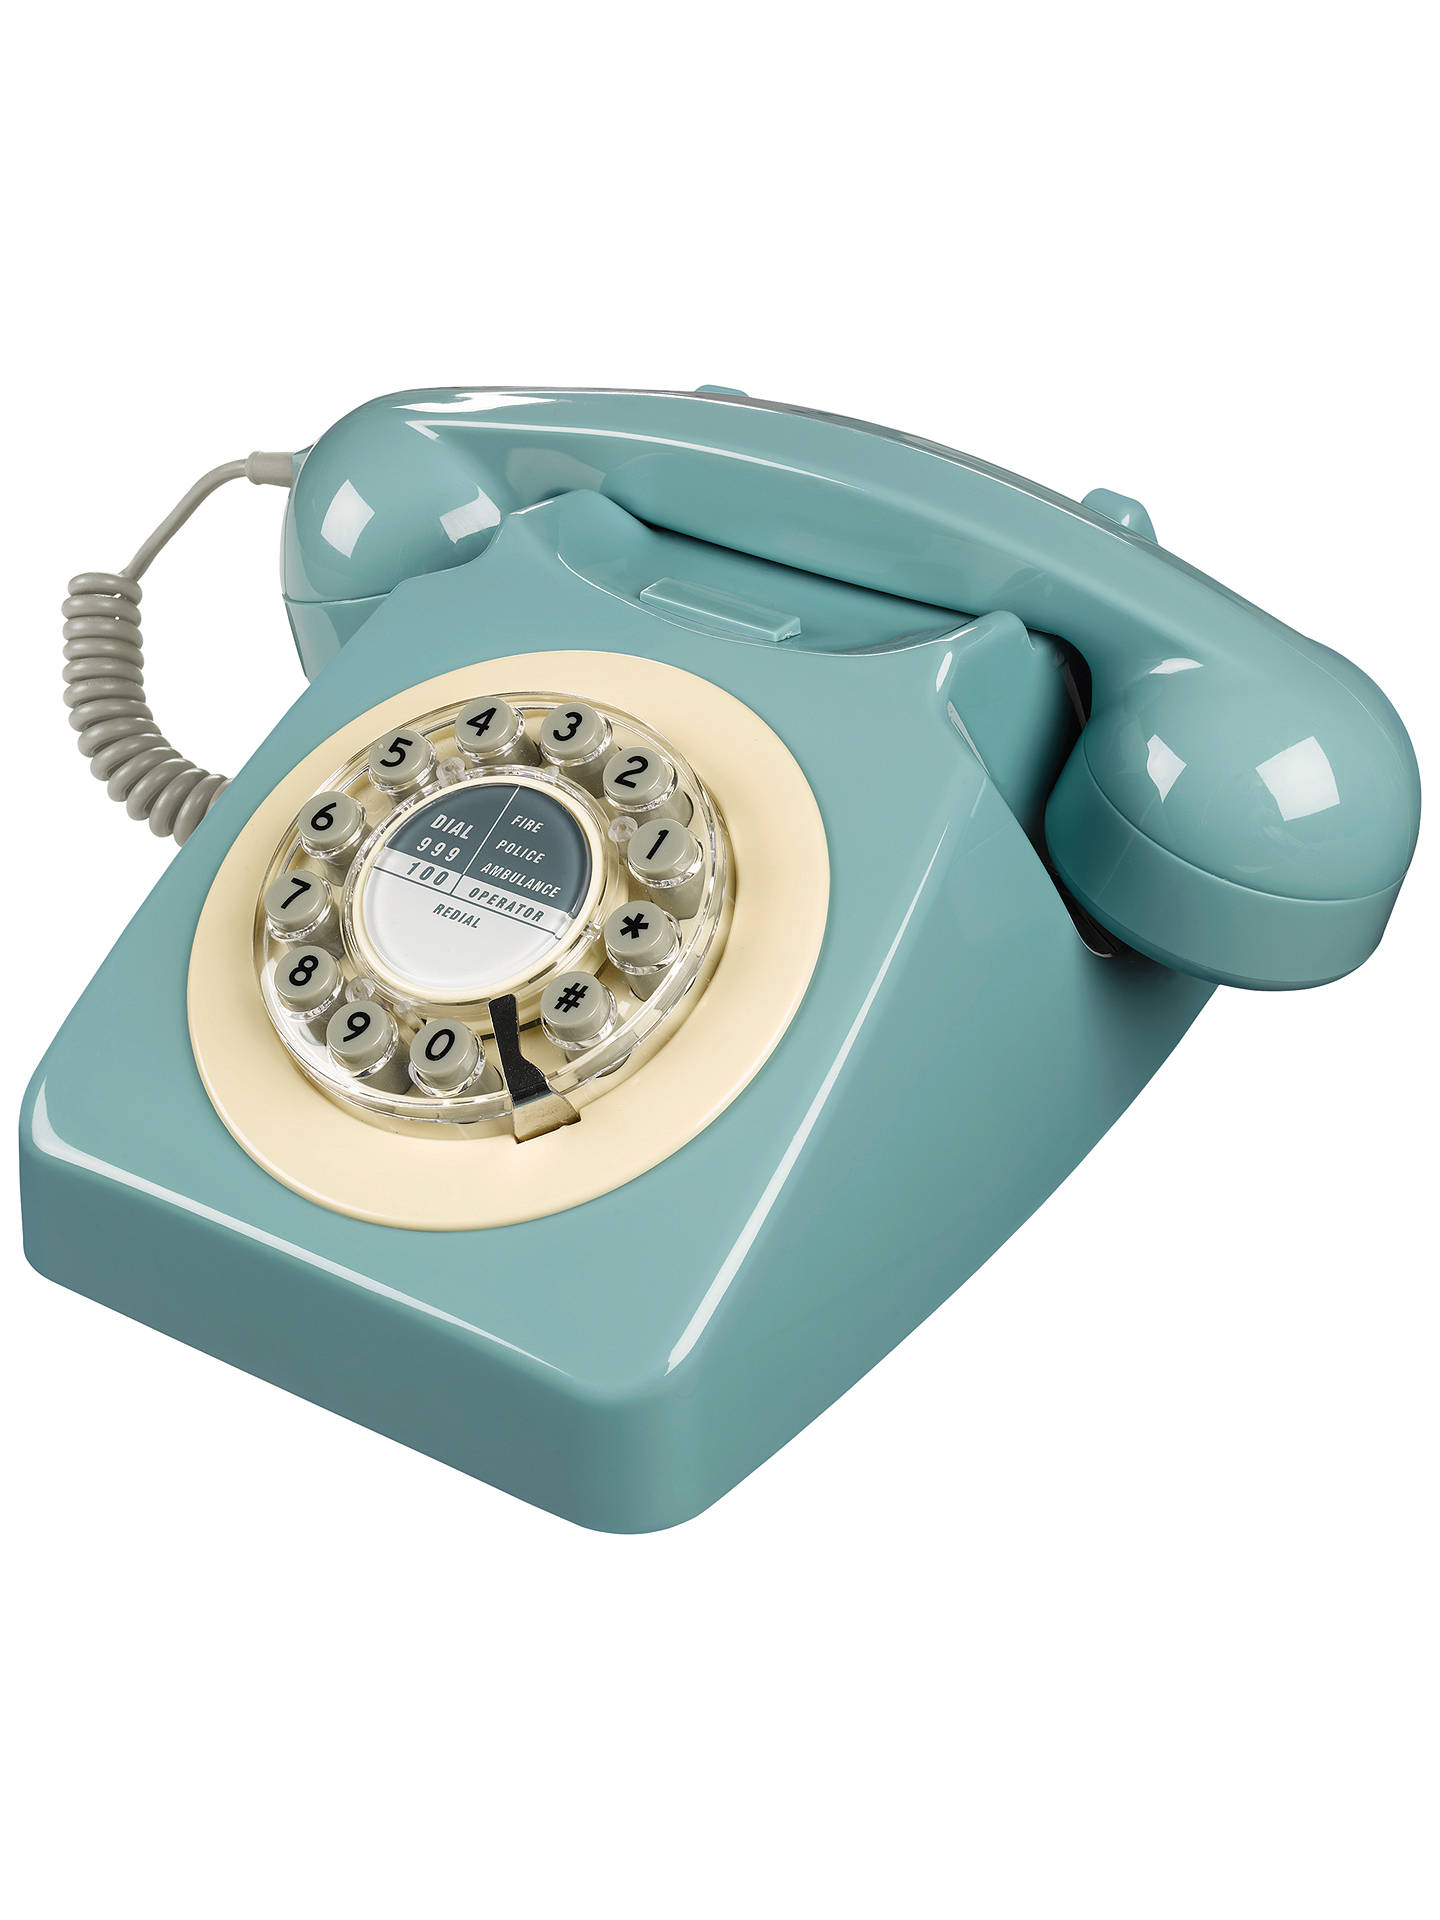 Buy Wild & Wolf 746 1960s Corded Telephone, French Blue Online at johnlewis.com